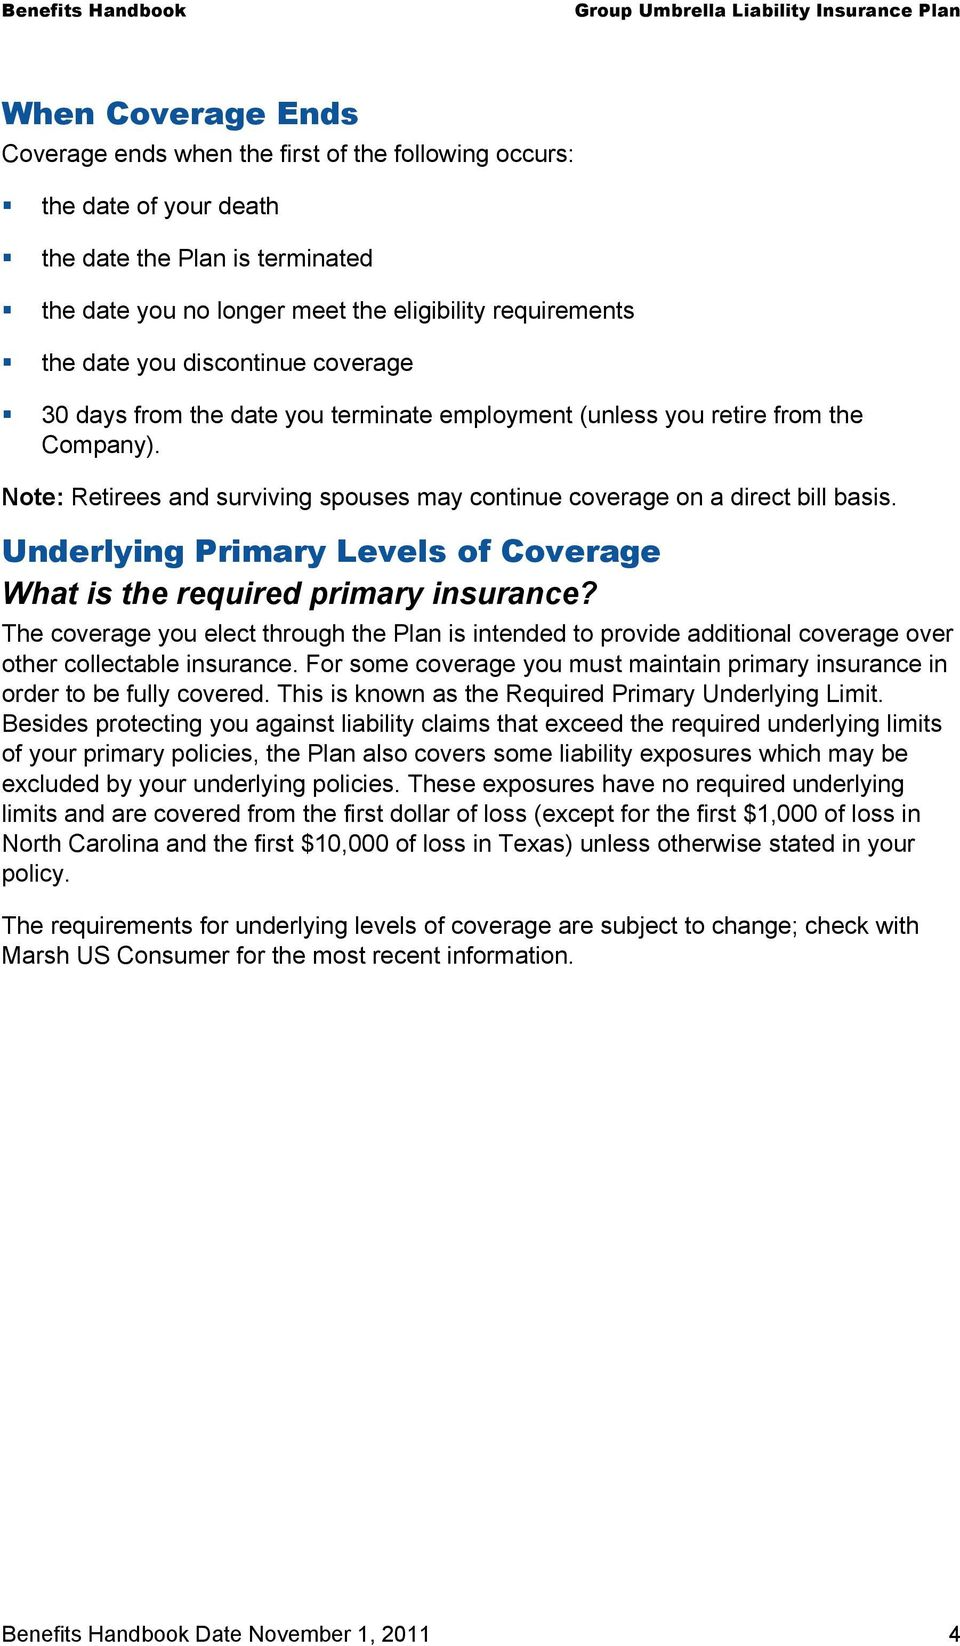 Underlying Primary Levels of Coverage What is the required primary insurance? The coverage you elect through the Plan is intended to provide additional coverage over other collectable insurance.